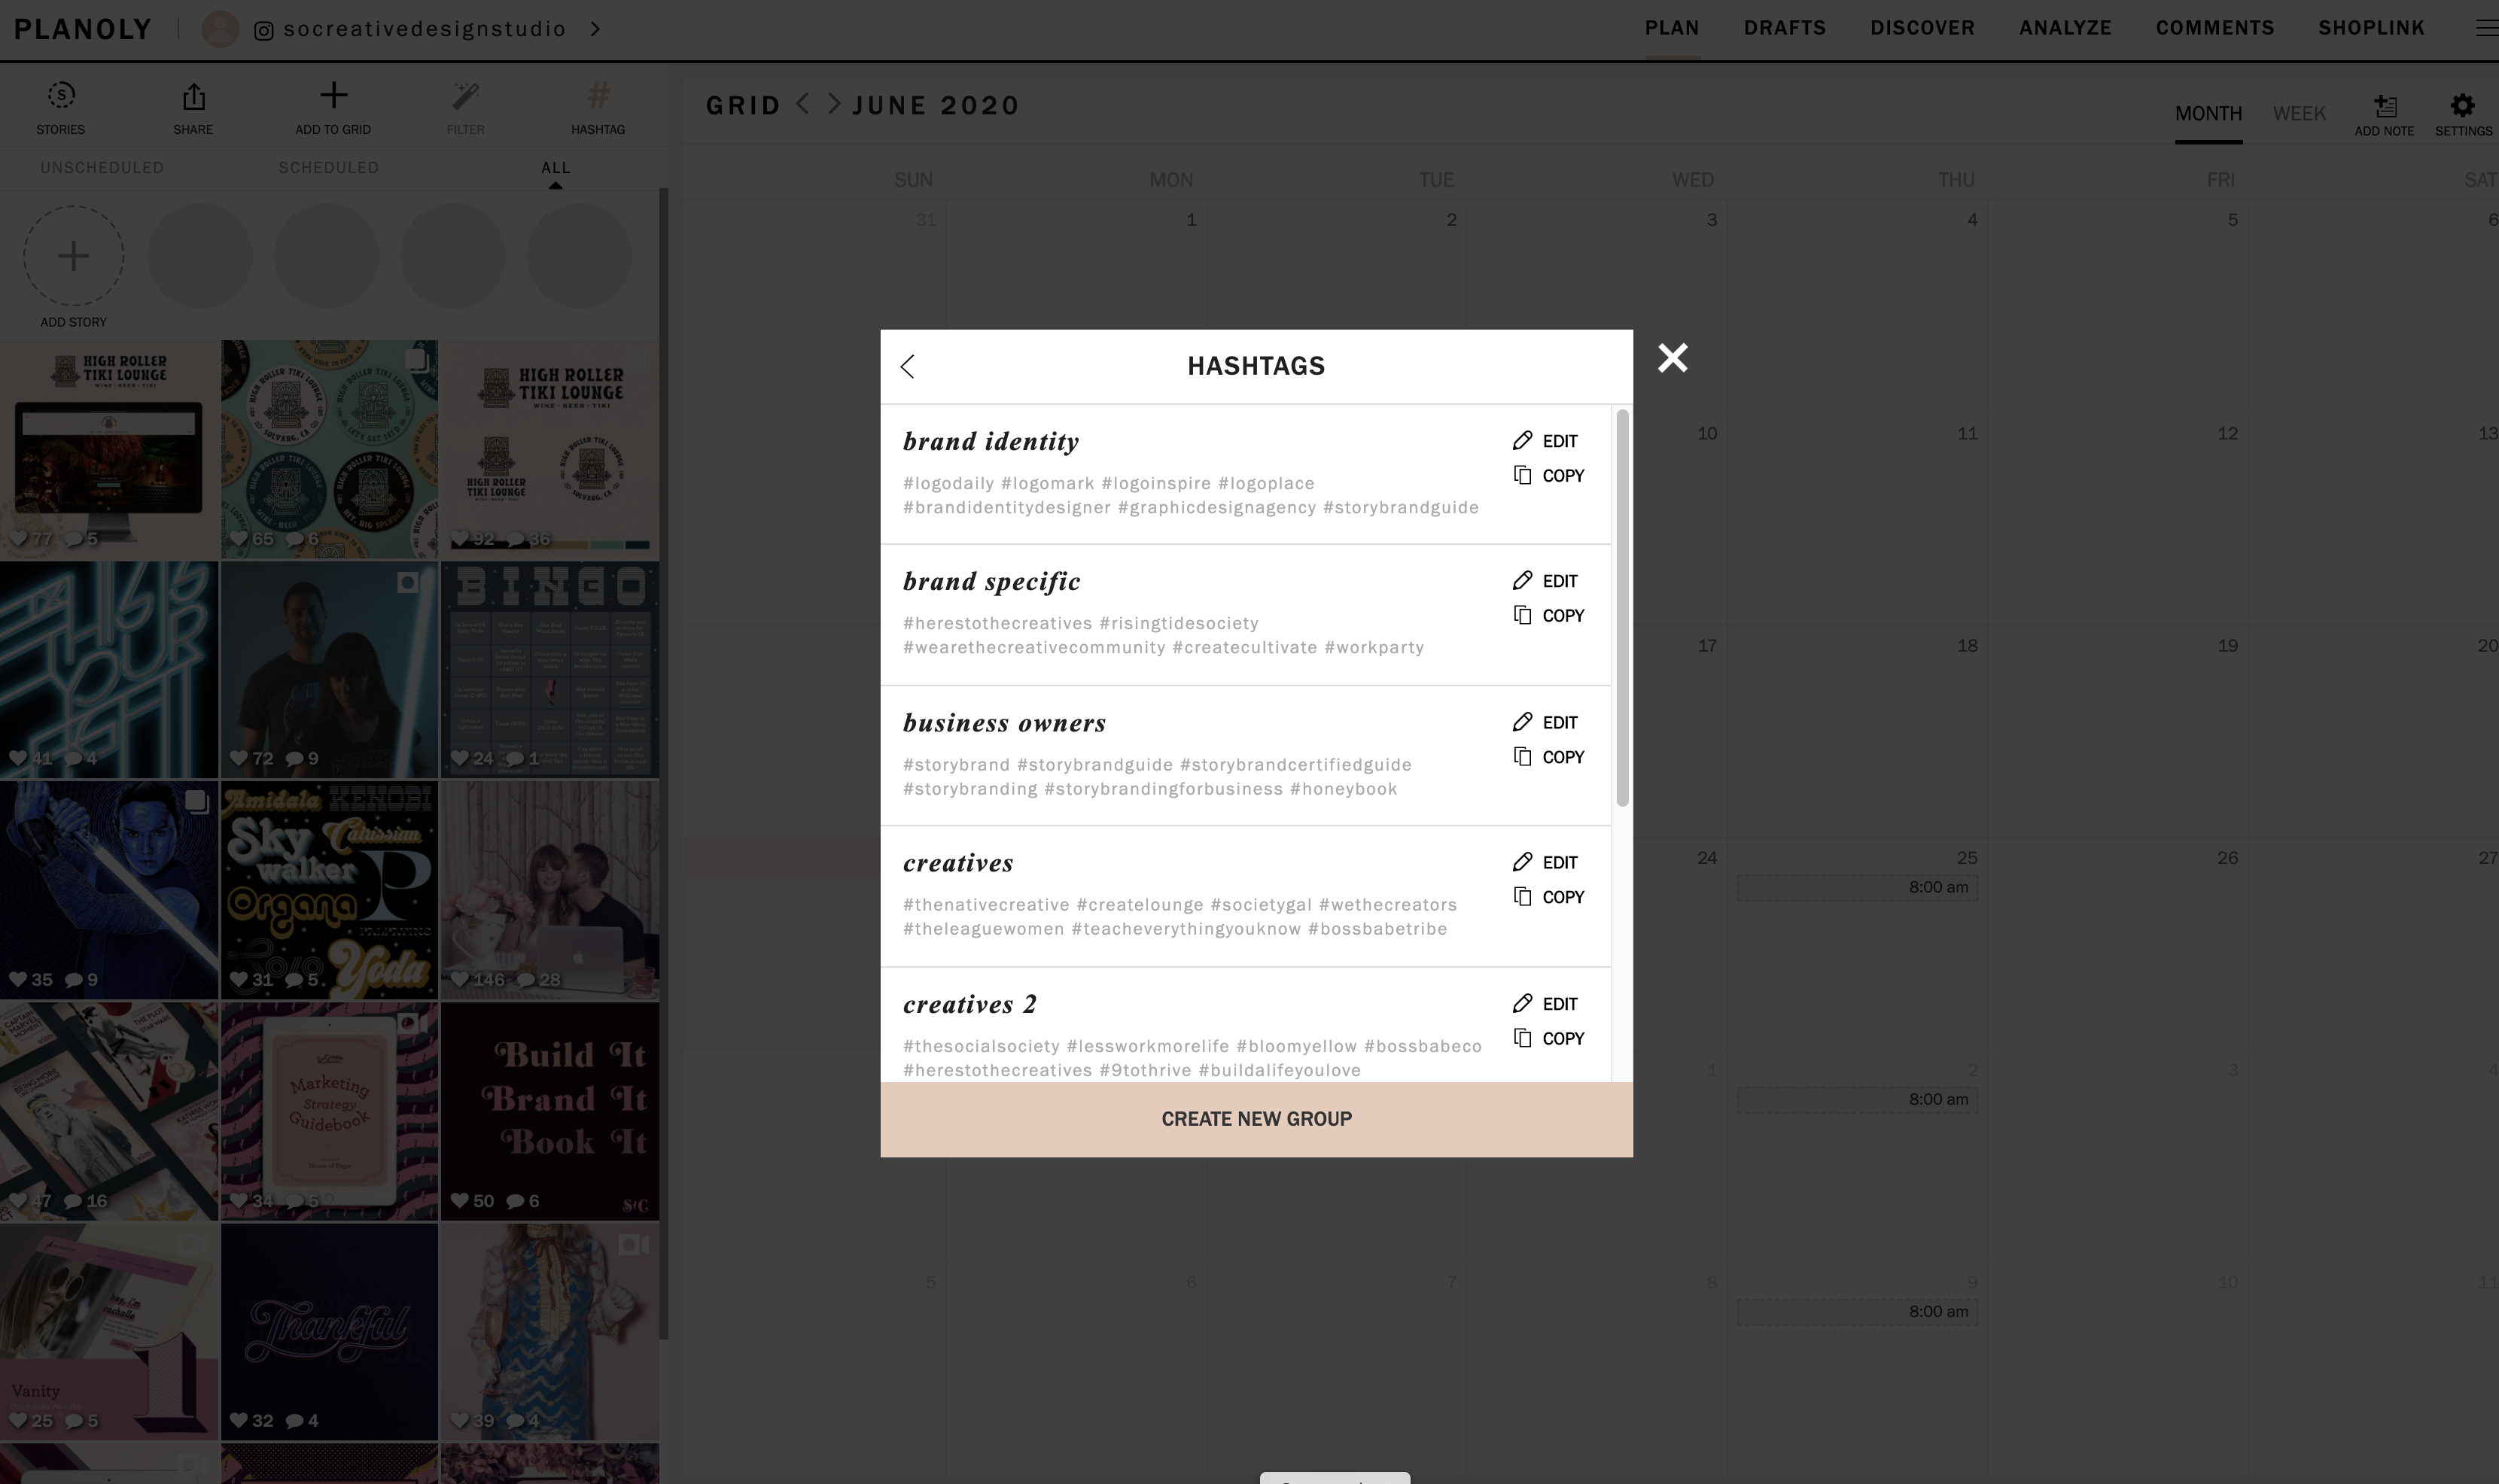 planoly content creation tools